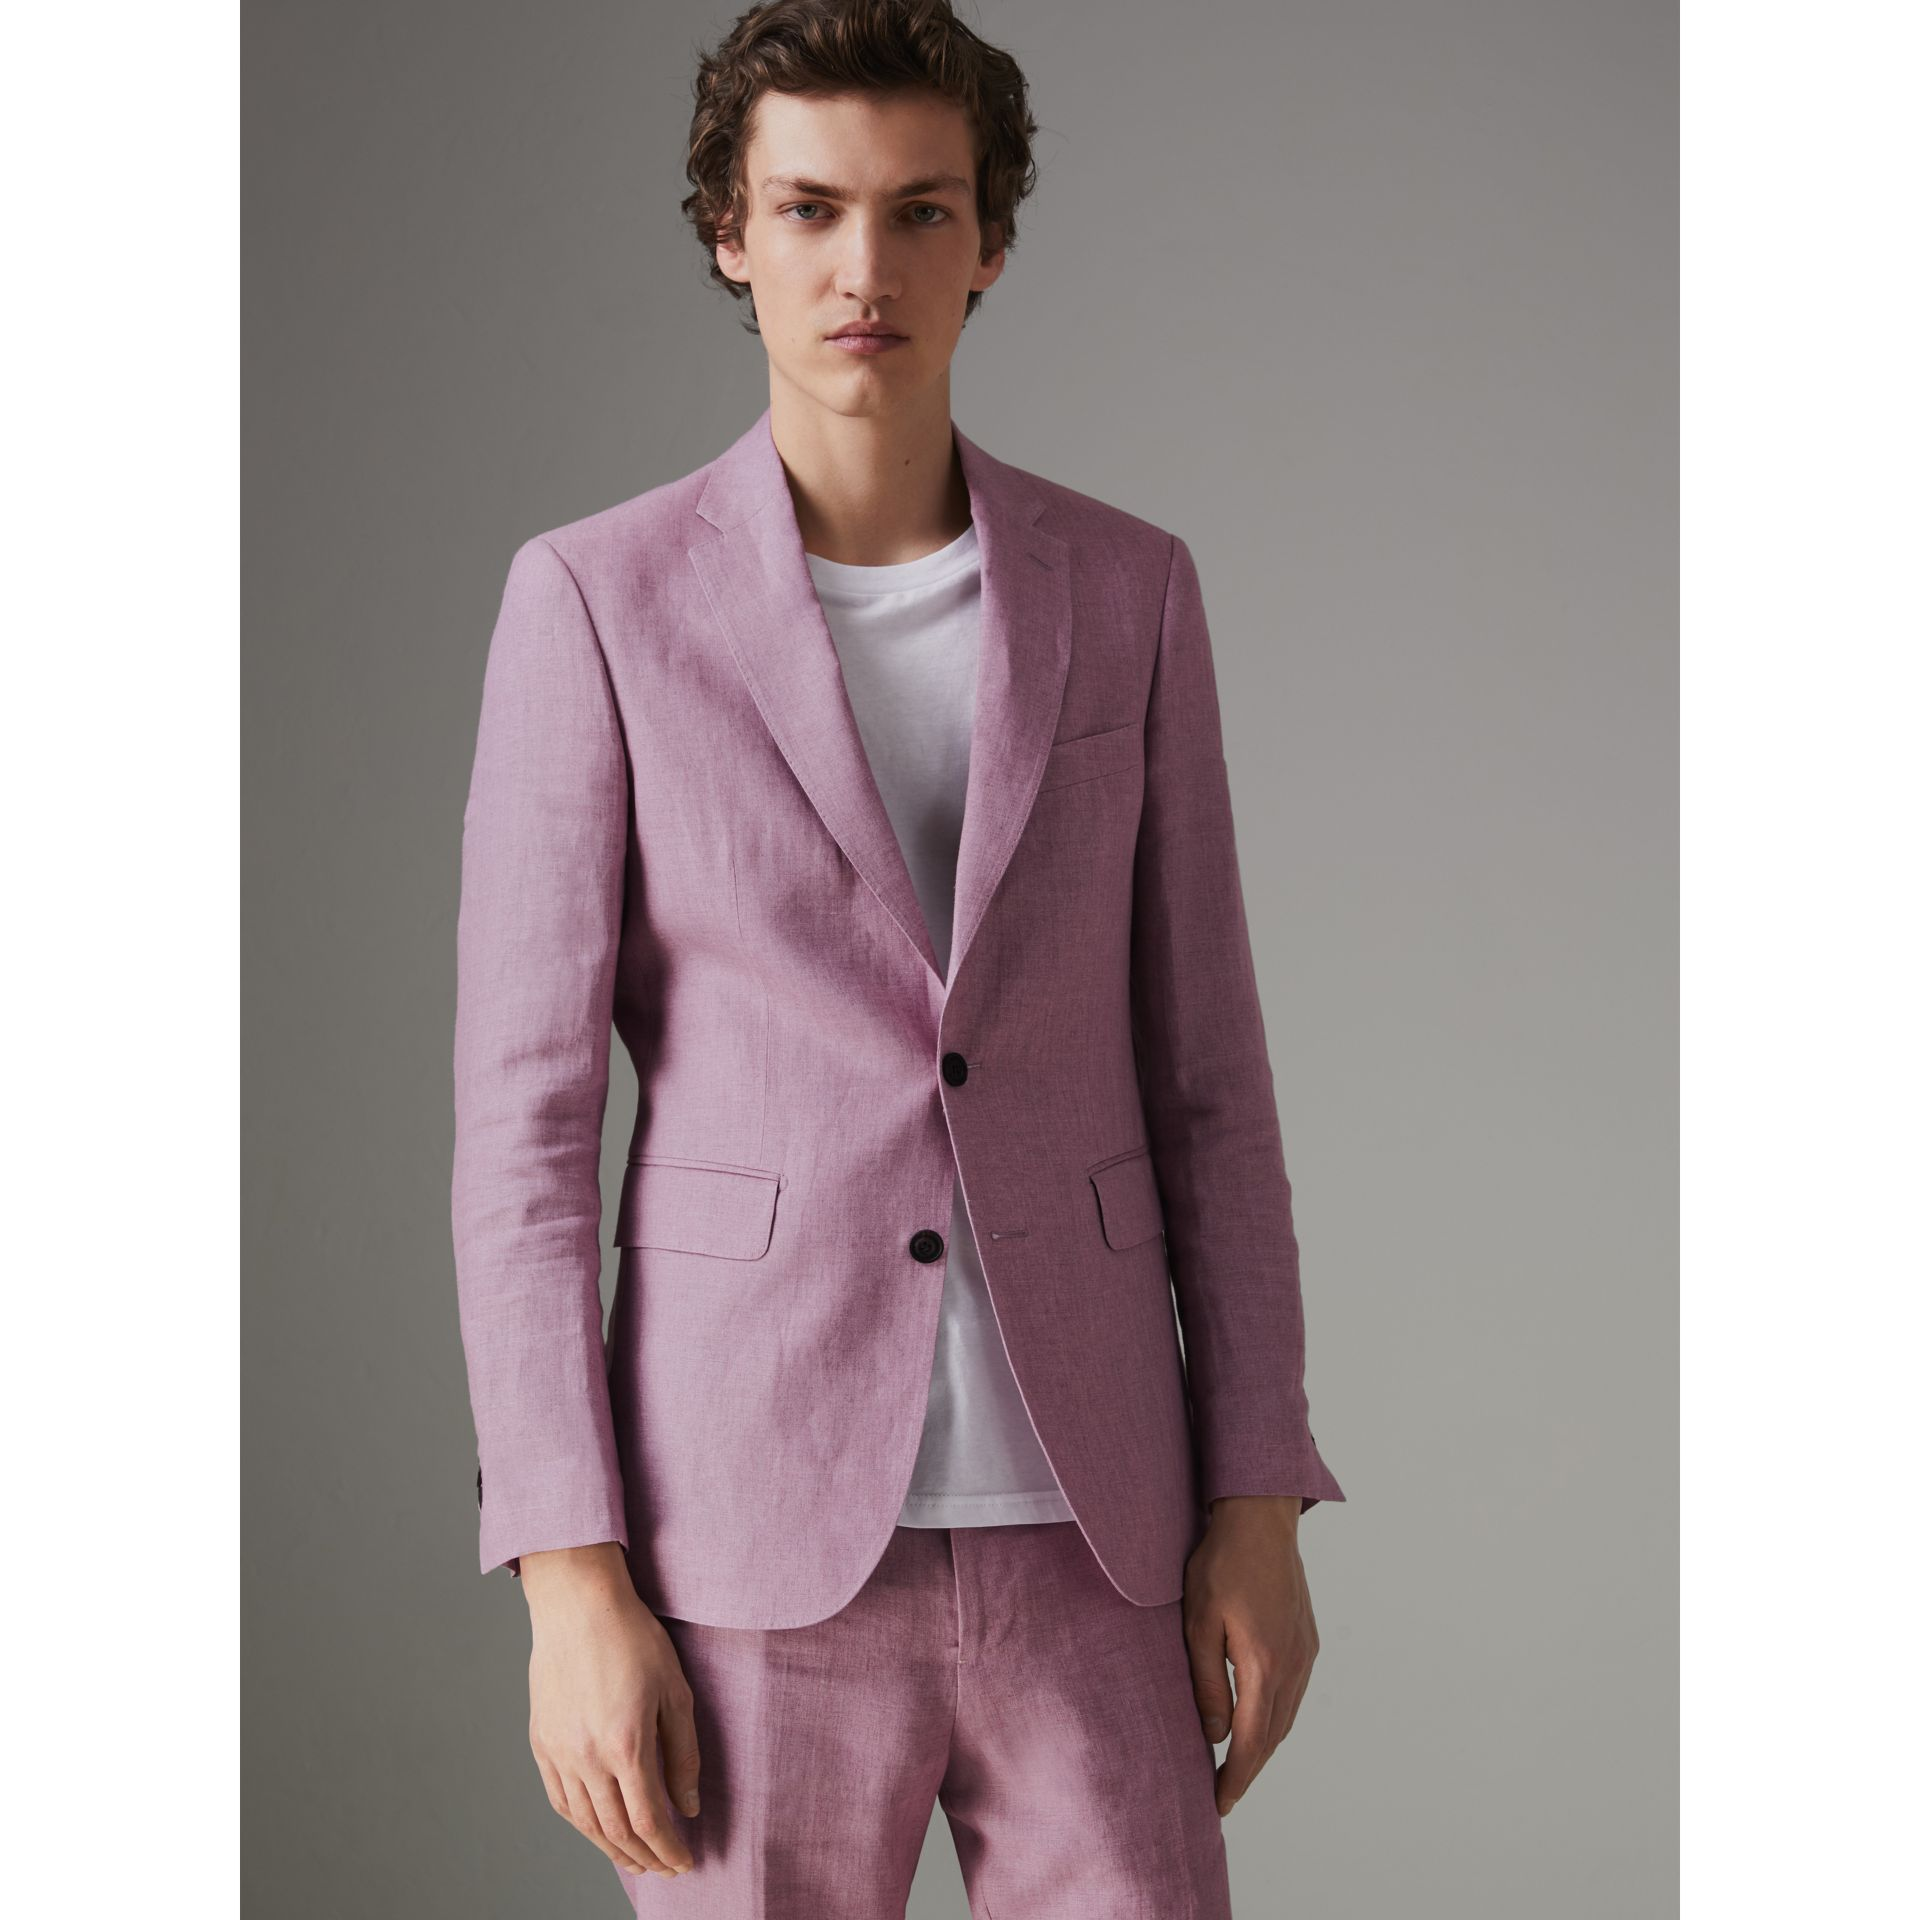 Soho Fit Linen Tailored Jacket in Pink Heather - Men | Burberry Canada - gallery image 5